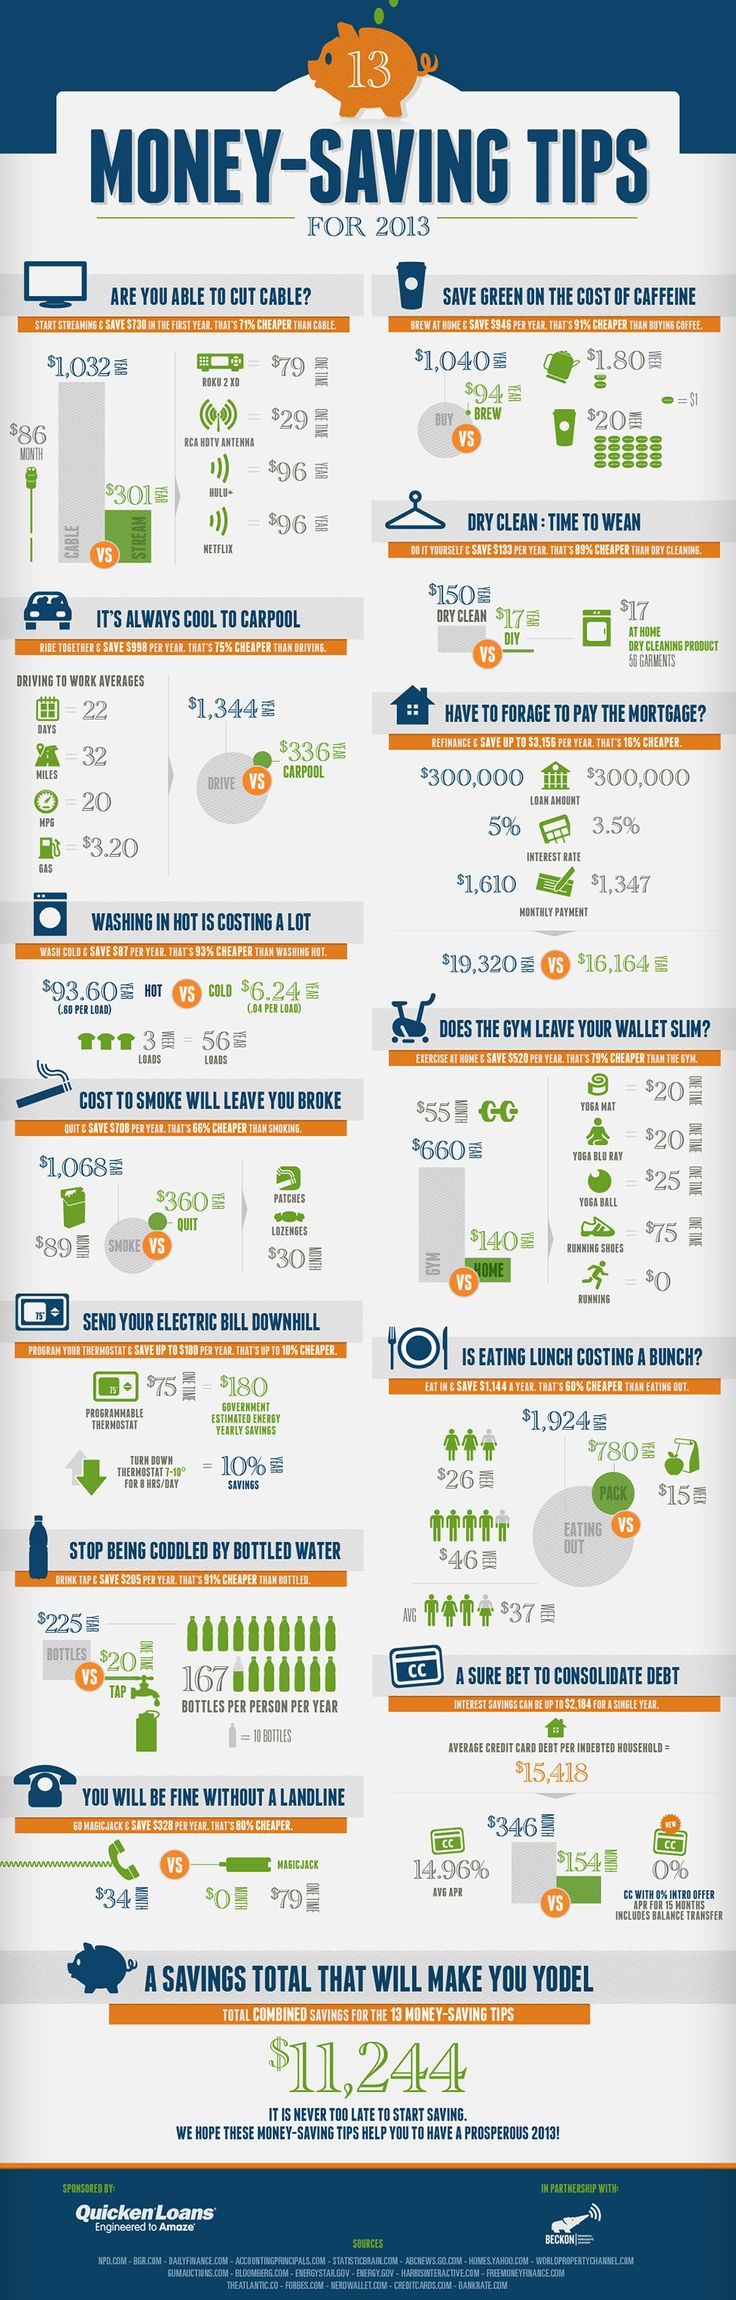 Personal Finance Tips 2013 - Ways to cut everyday costs - At infographicsmania.com #Money #Saving #Finances